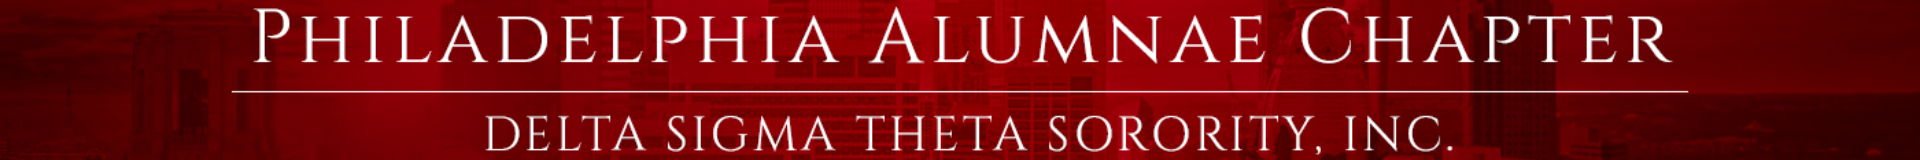 Philadelphia Alumnae Chapter